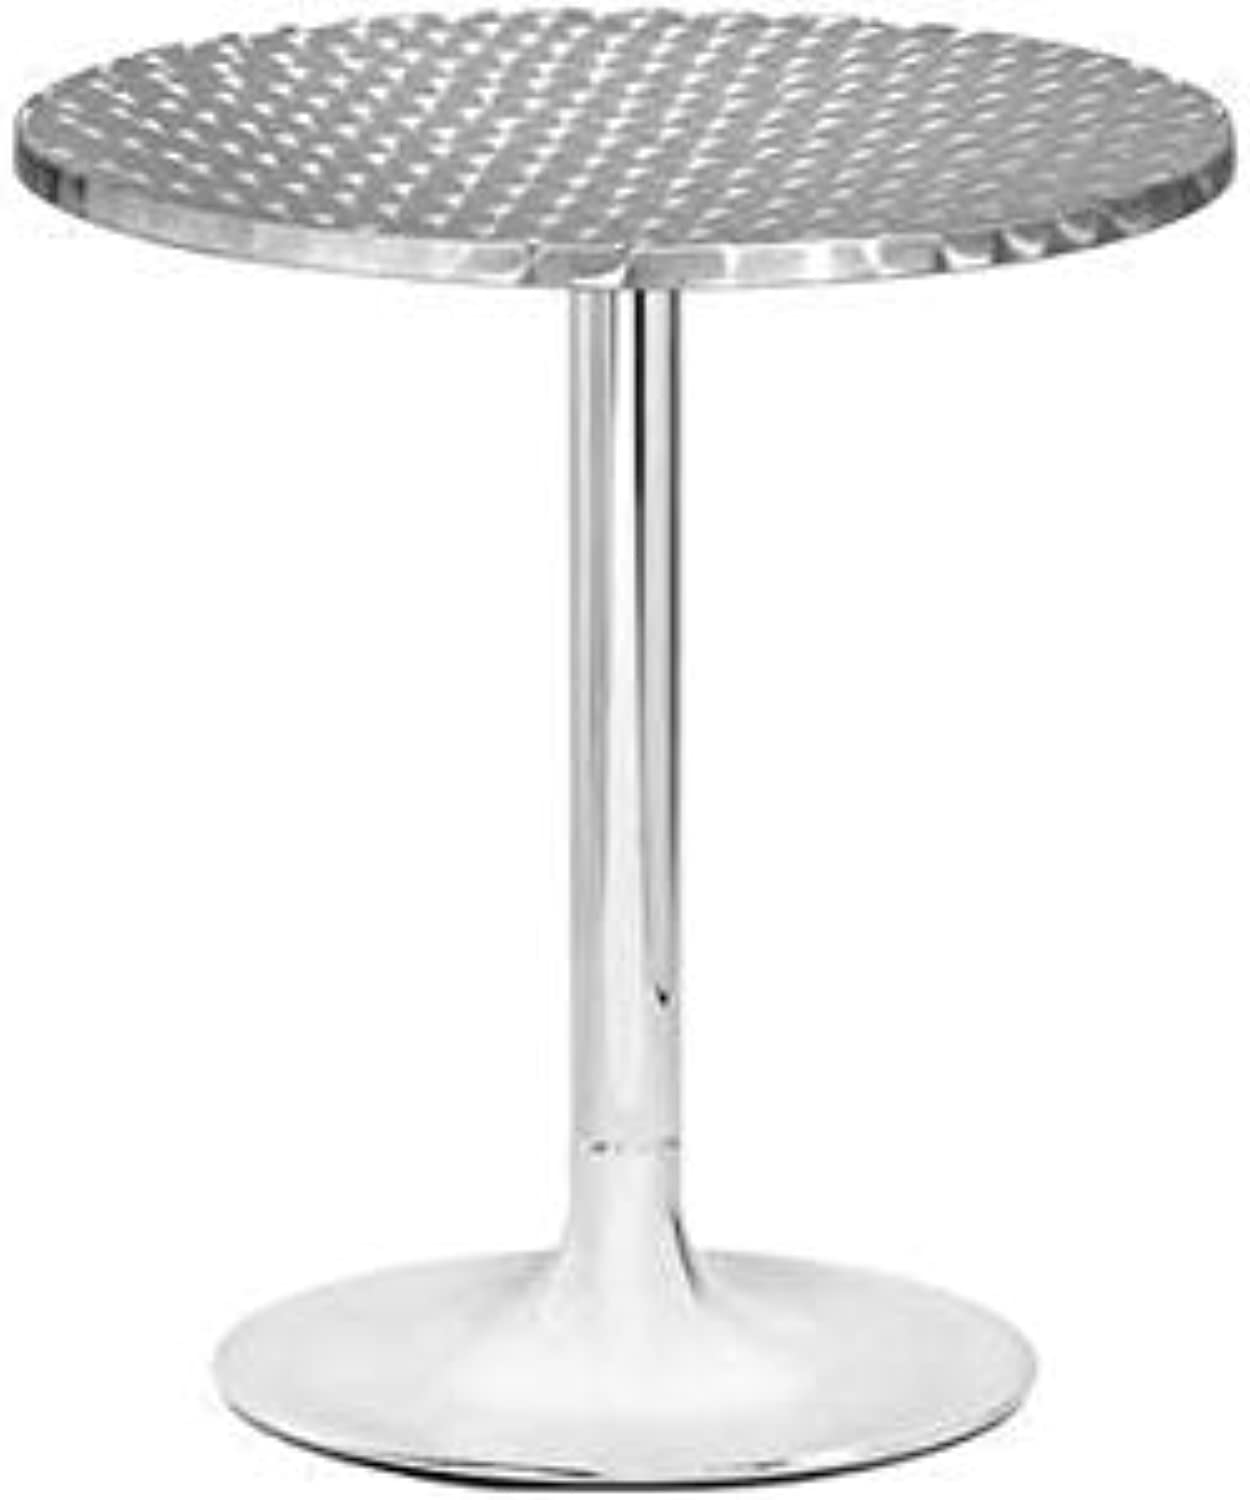 Round Cafe Table Monarch Disc Base [800mm]